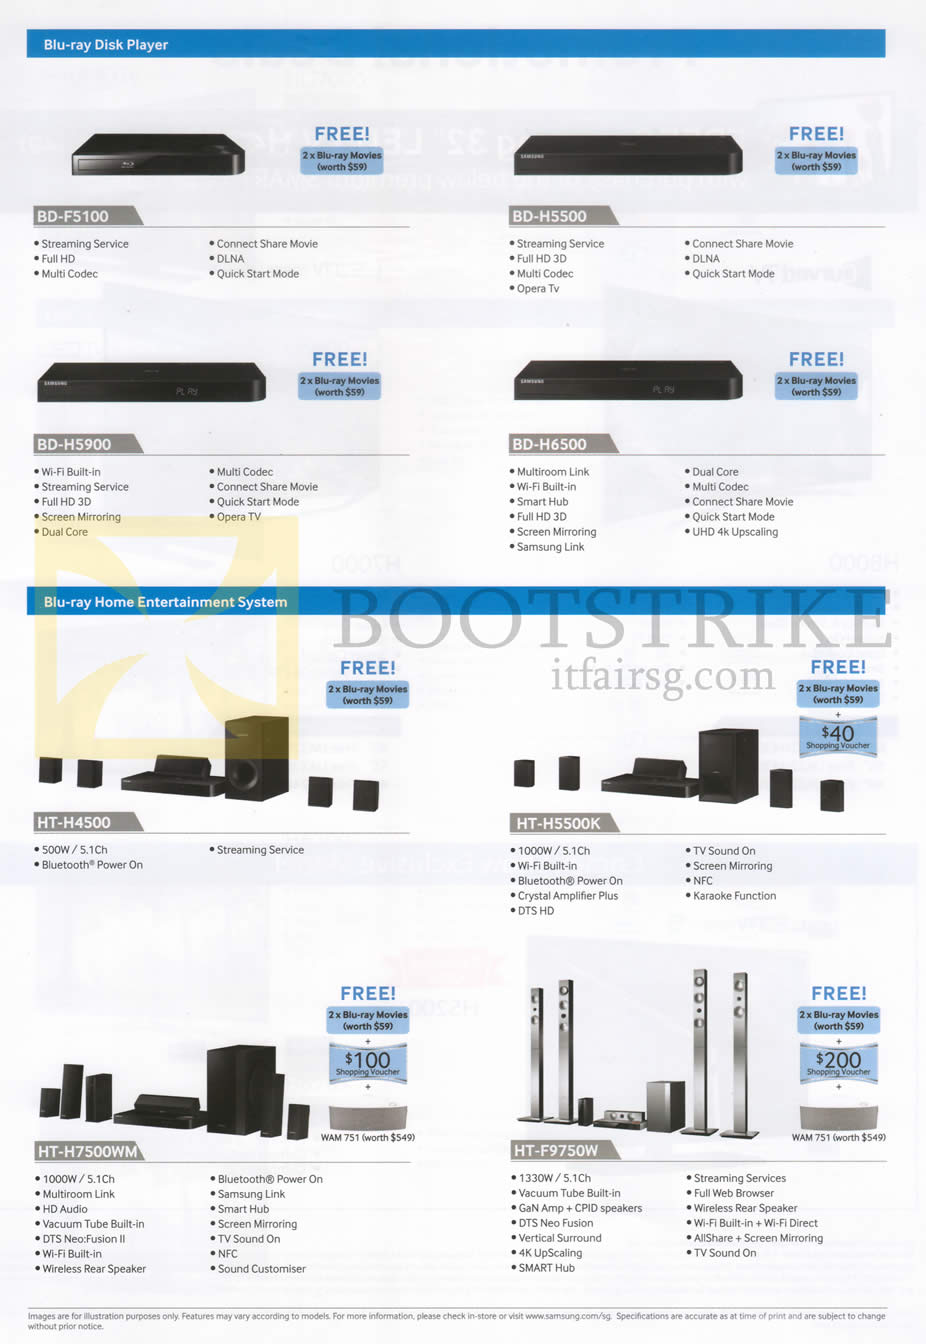 COMEX 2014 price list image brochure of Samsung (No Prices) Blu-Ray Players, Blu-Ray Home Theatre System BD-F5100, BD-H5500, BD-H5900, BD-H6500, HT-H4500, HT-H5500K, HT-H7500WM, HT-F9750W